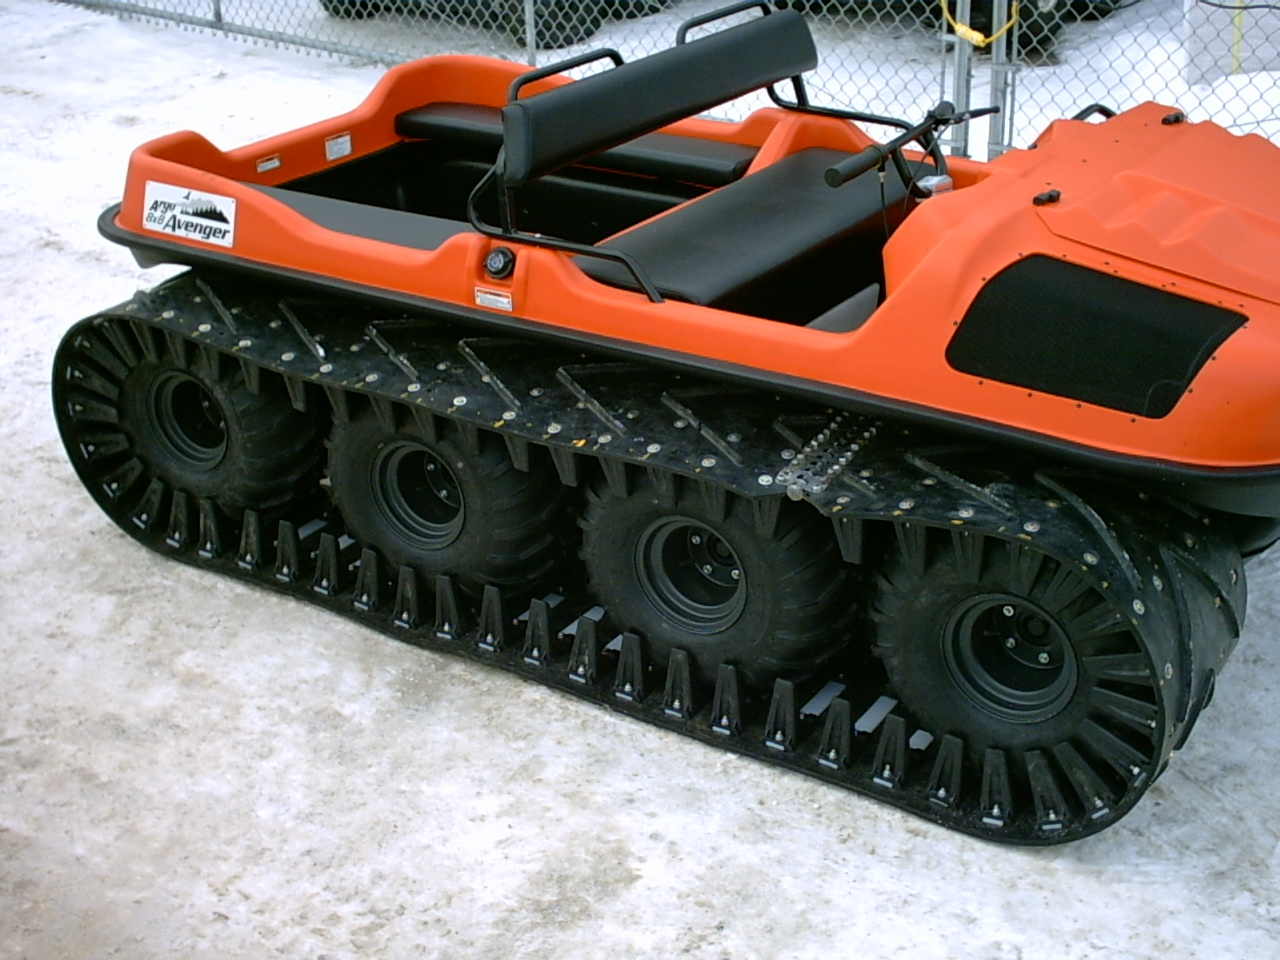 Image of Argo tracks and Argo tracks for sale.